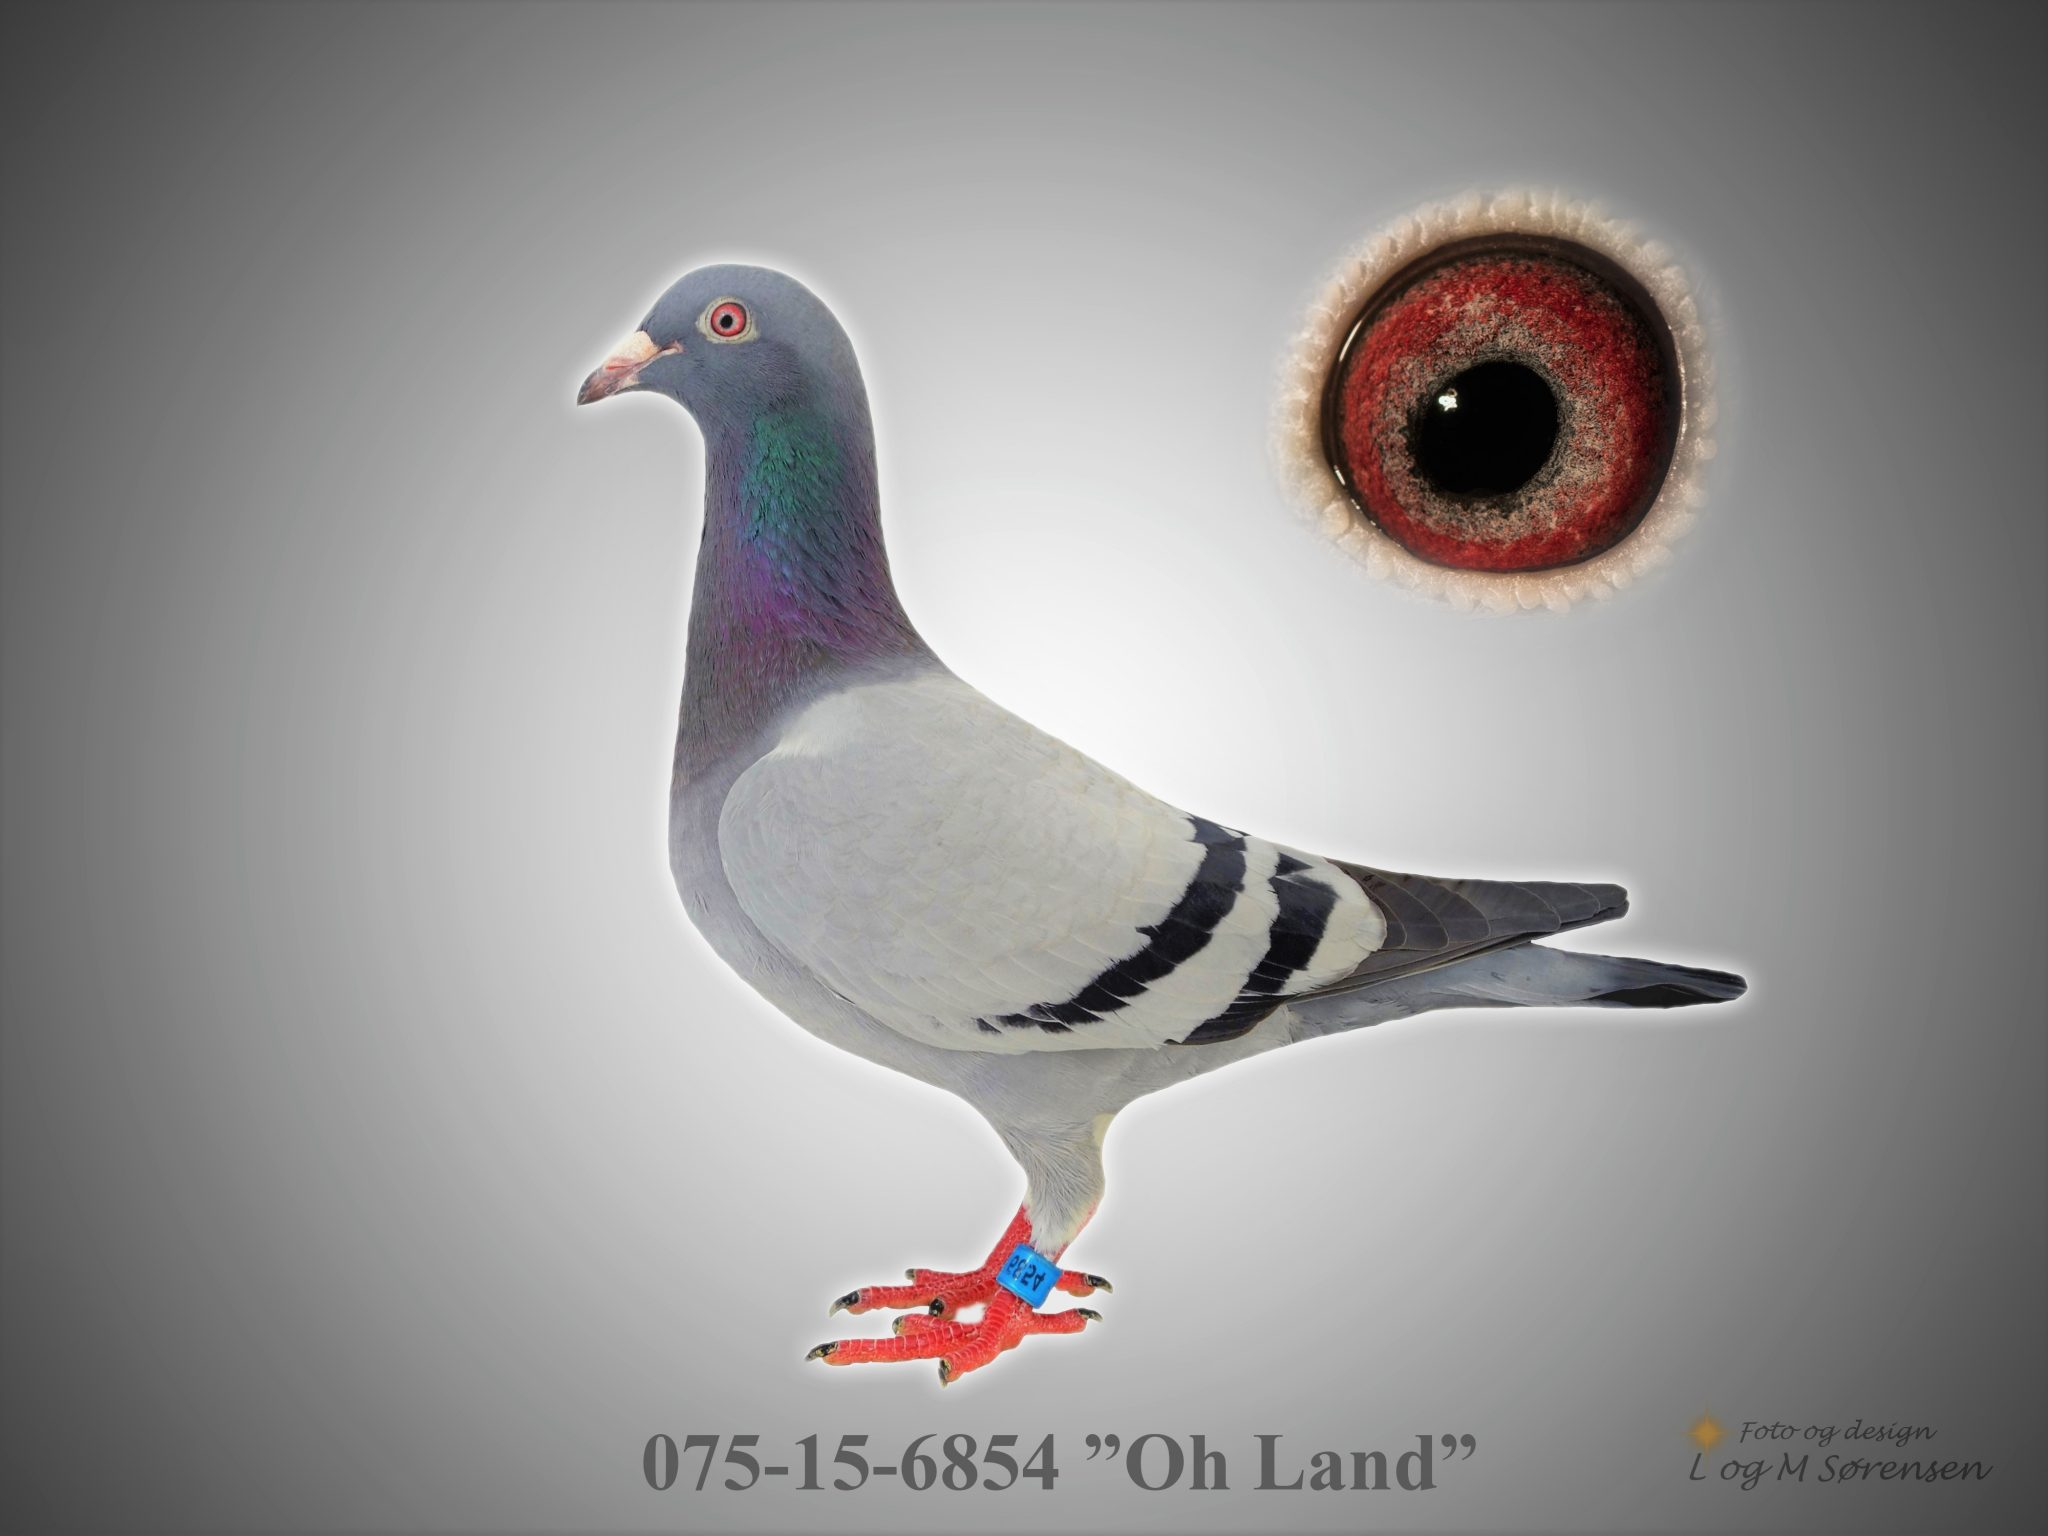 """Rede 19 075-15-6854 """"Oh Land"""""""